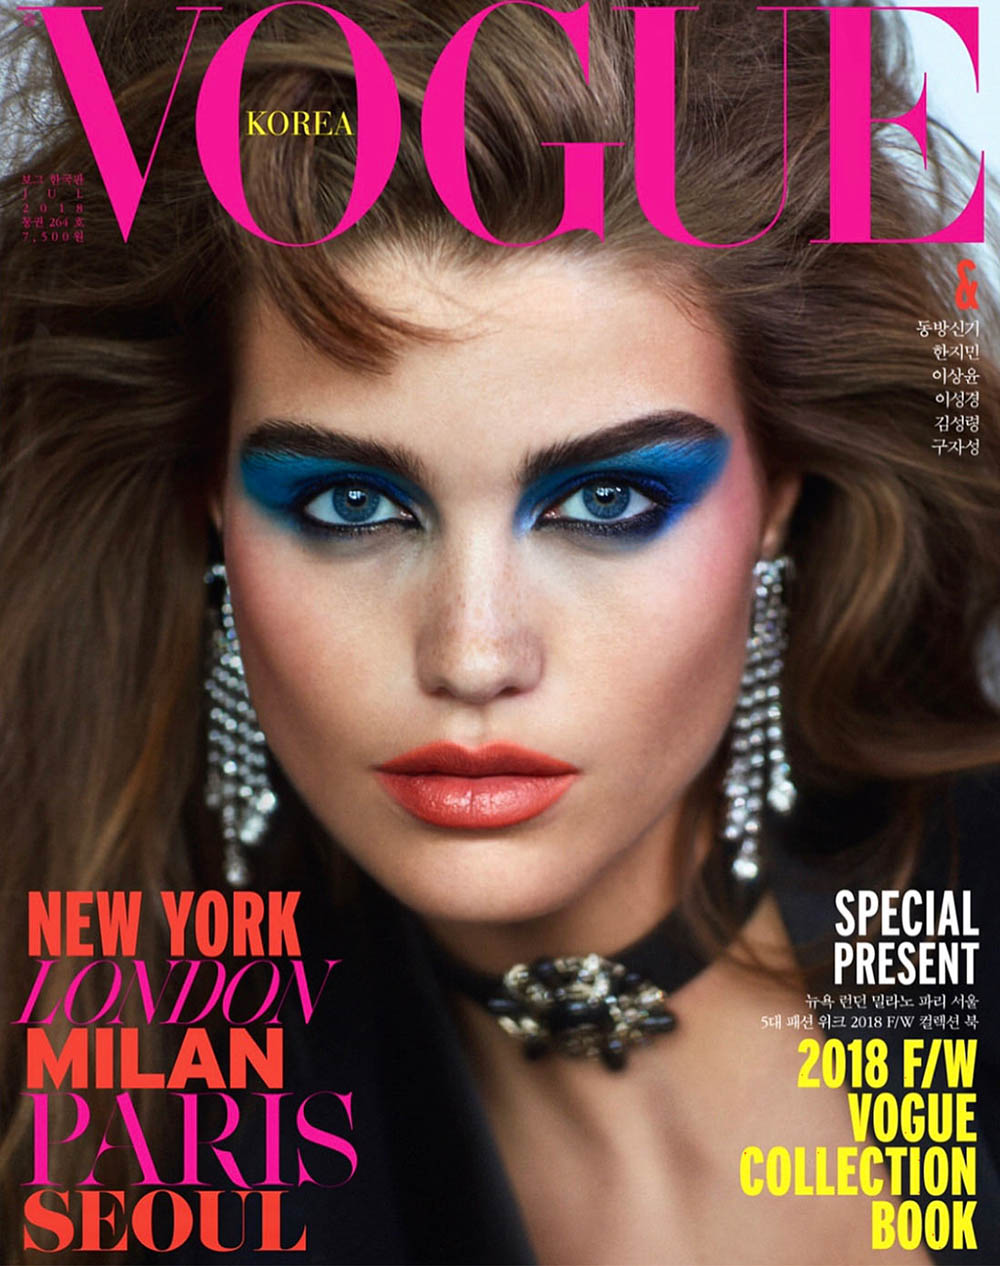 Luna Bijl covers Vogue Korea July 2018 by Hyea W. Kang